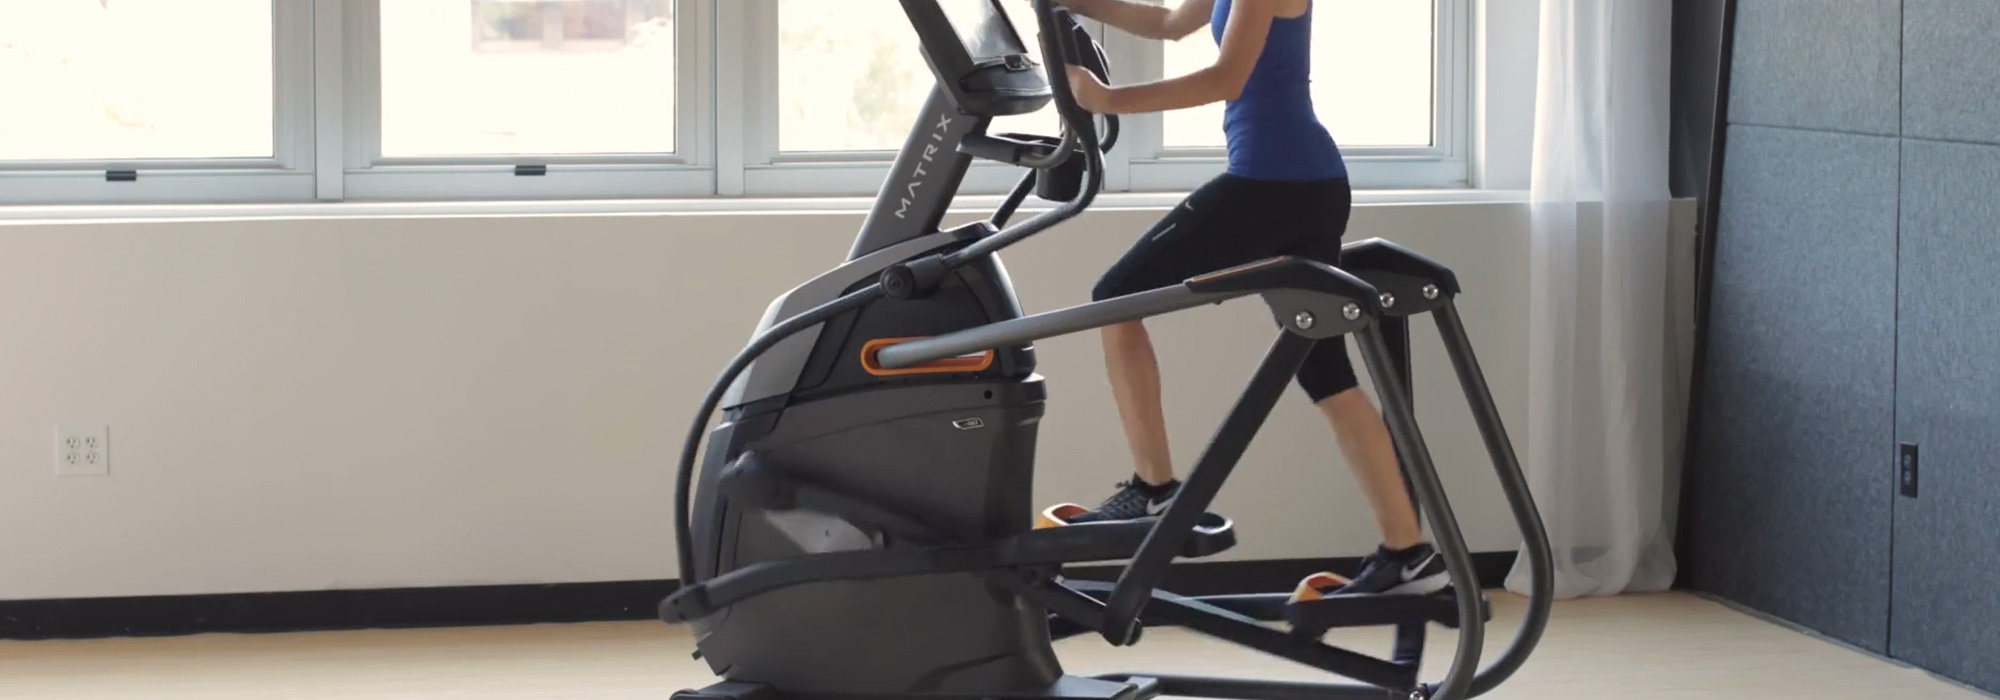 Matrix Ellipticals & Ascent Trainers